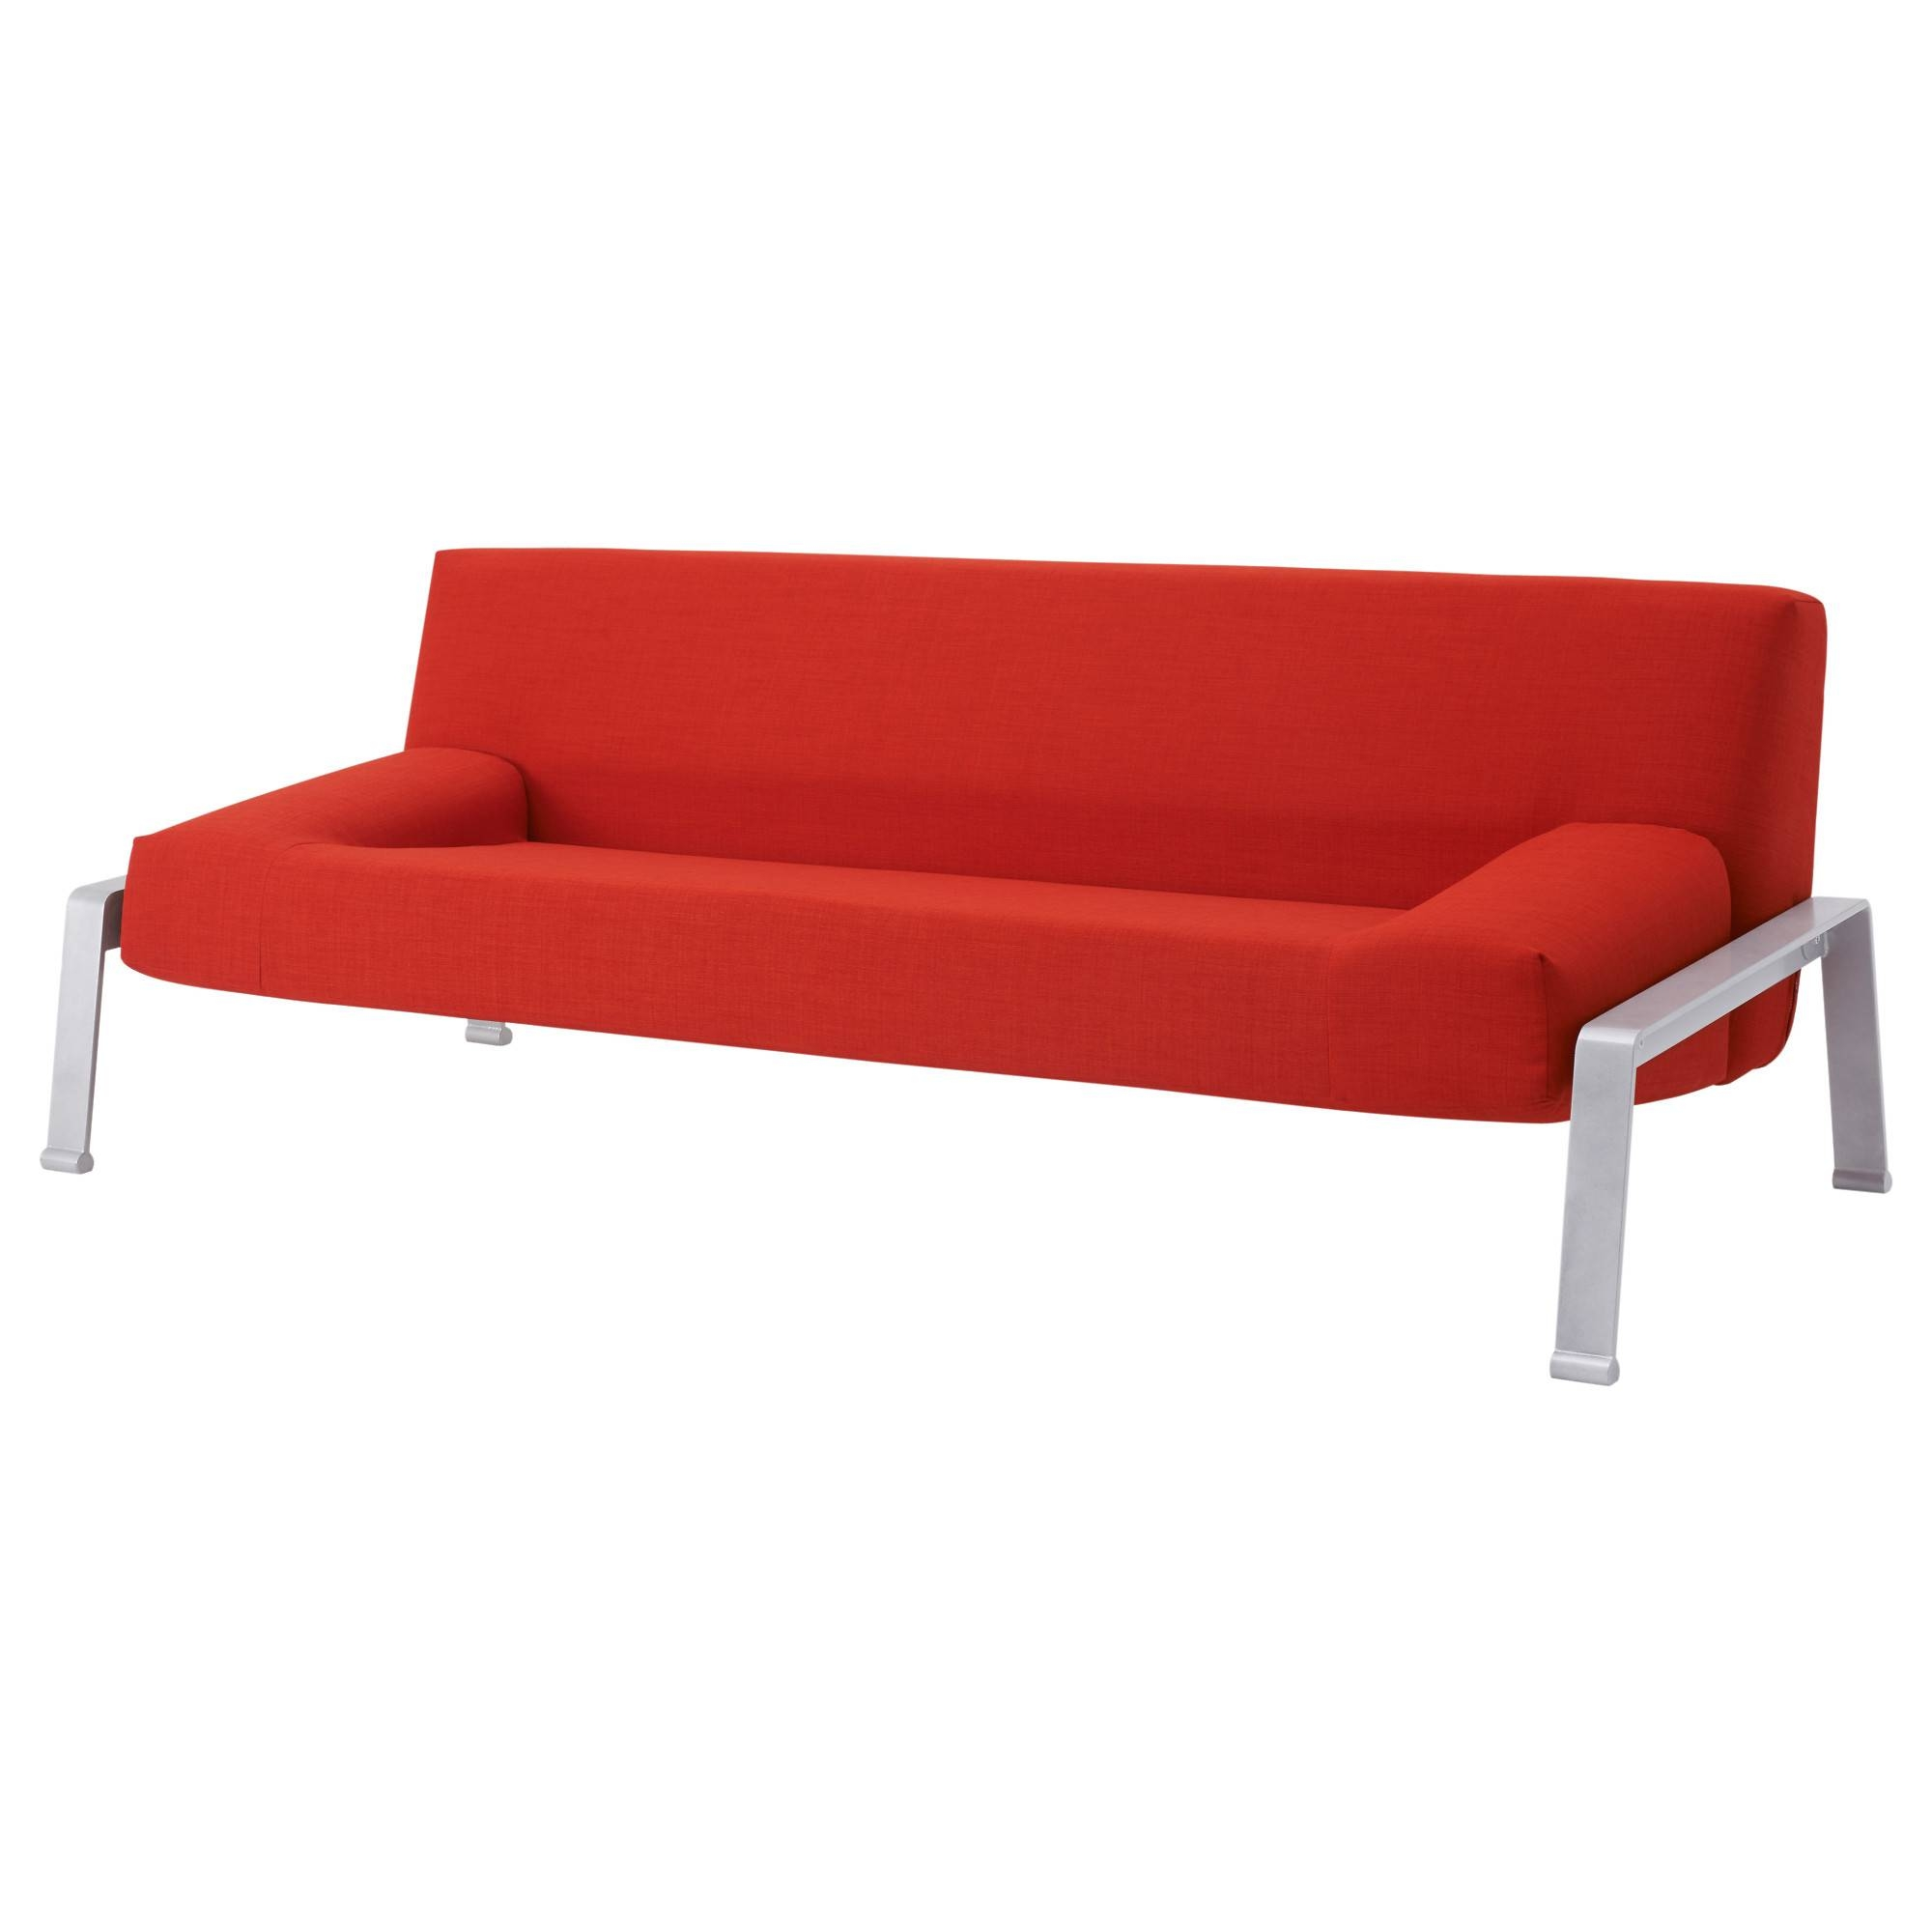 Furniture: Impressive Ikea Sofa Beds For Your Living Room — Mabas4 in Ikea Single Sofa Beds (Image 11 of 30)